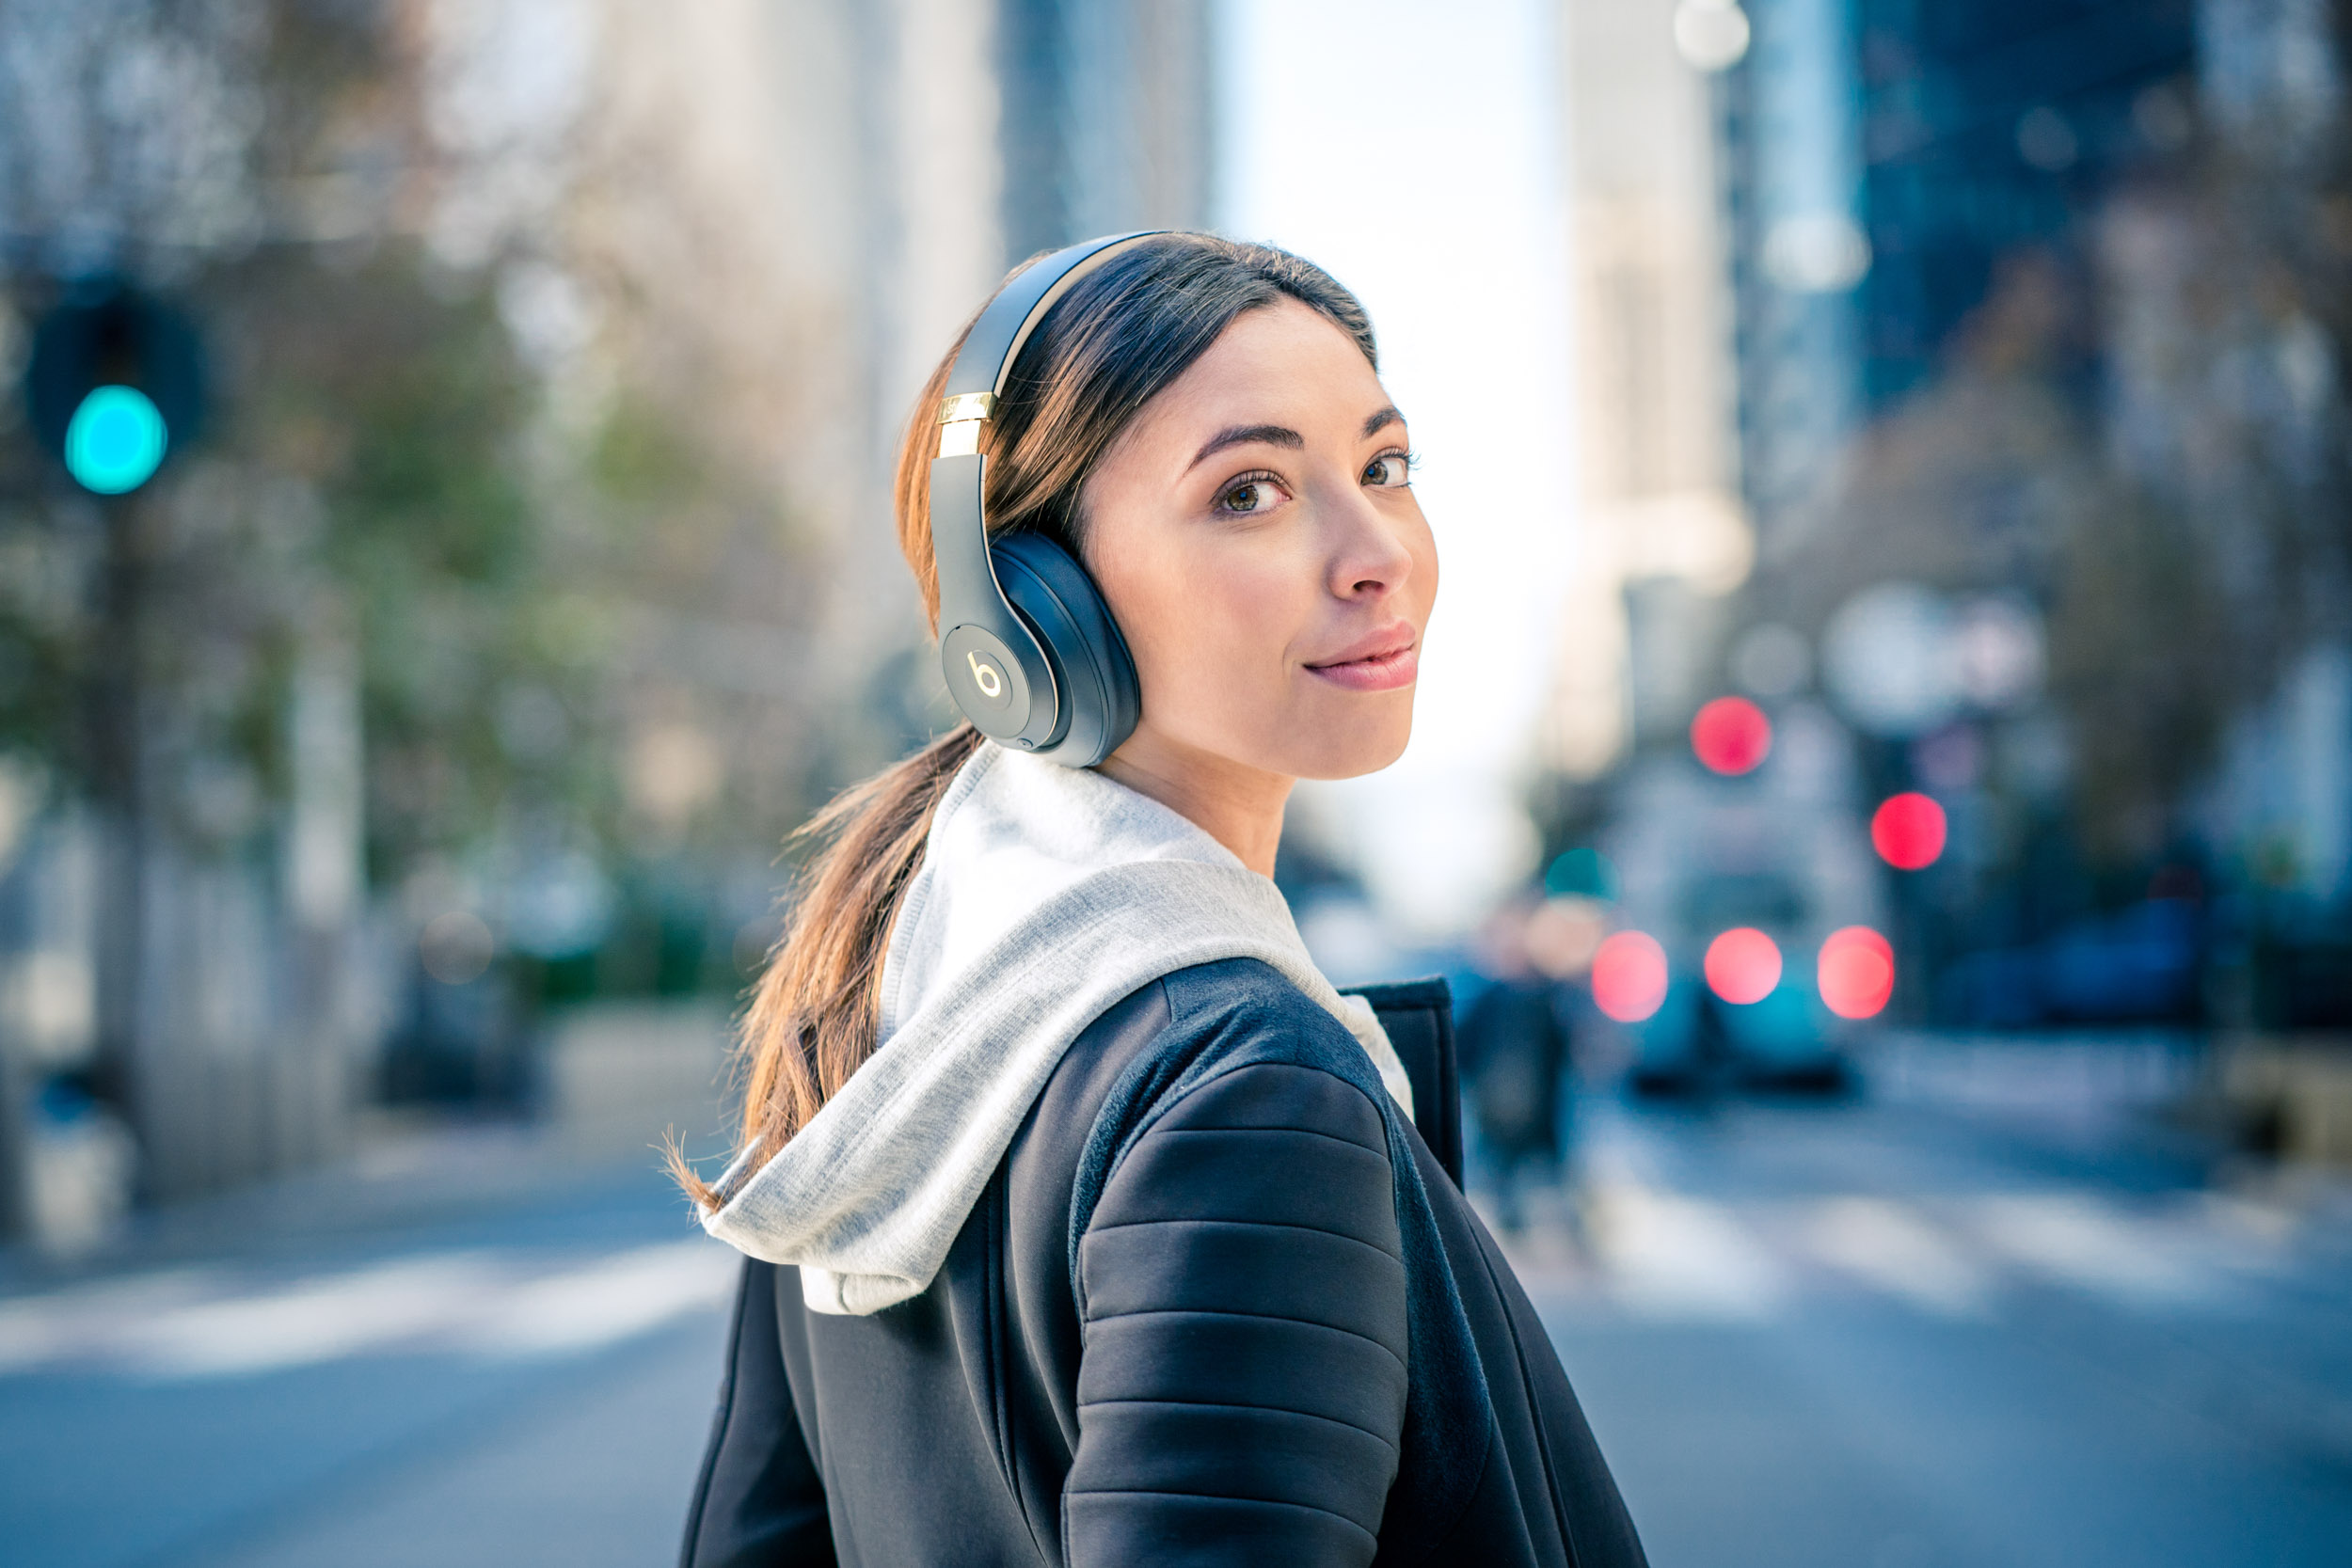 Female wearing Beats headphones looks over her shoulder while crossing street in San Francisco